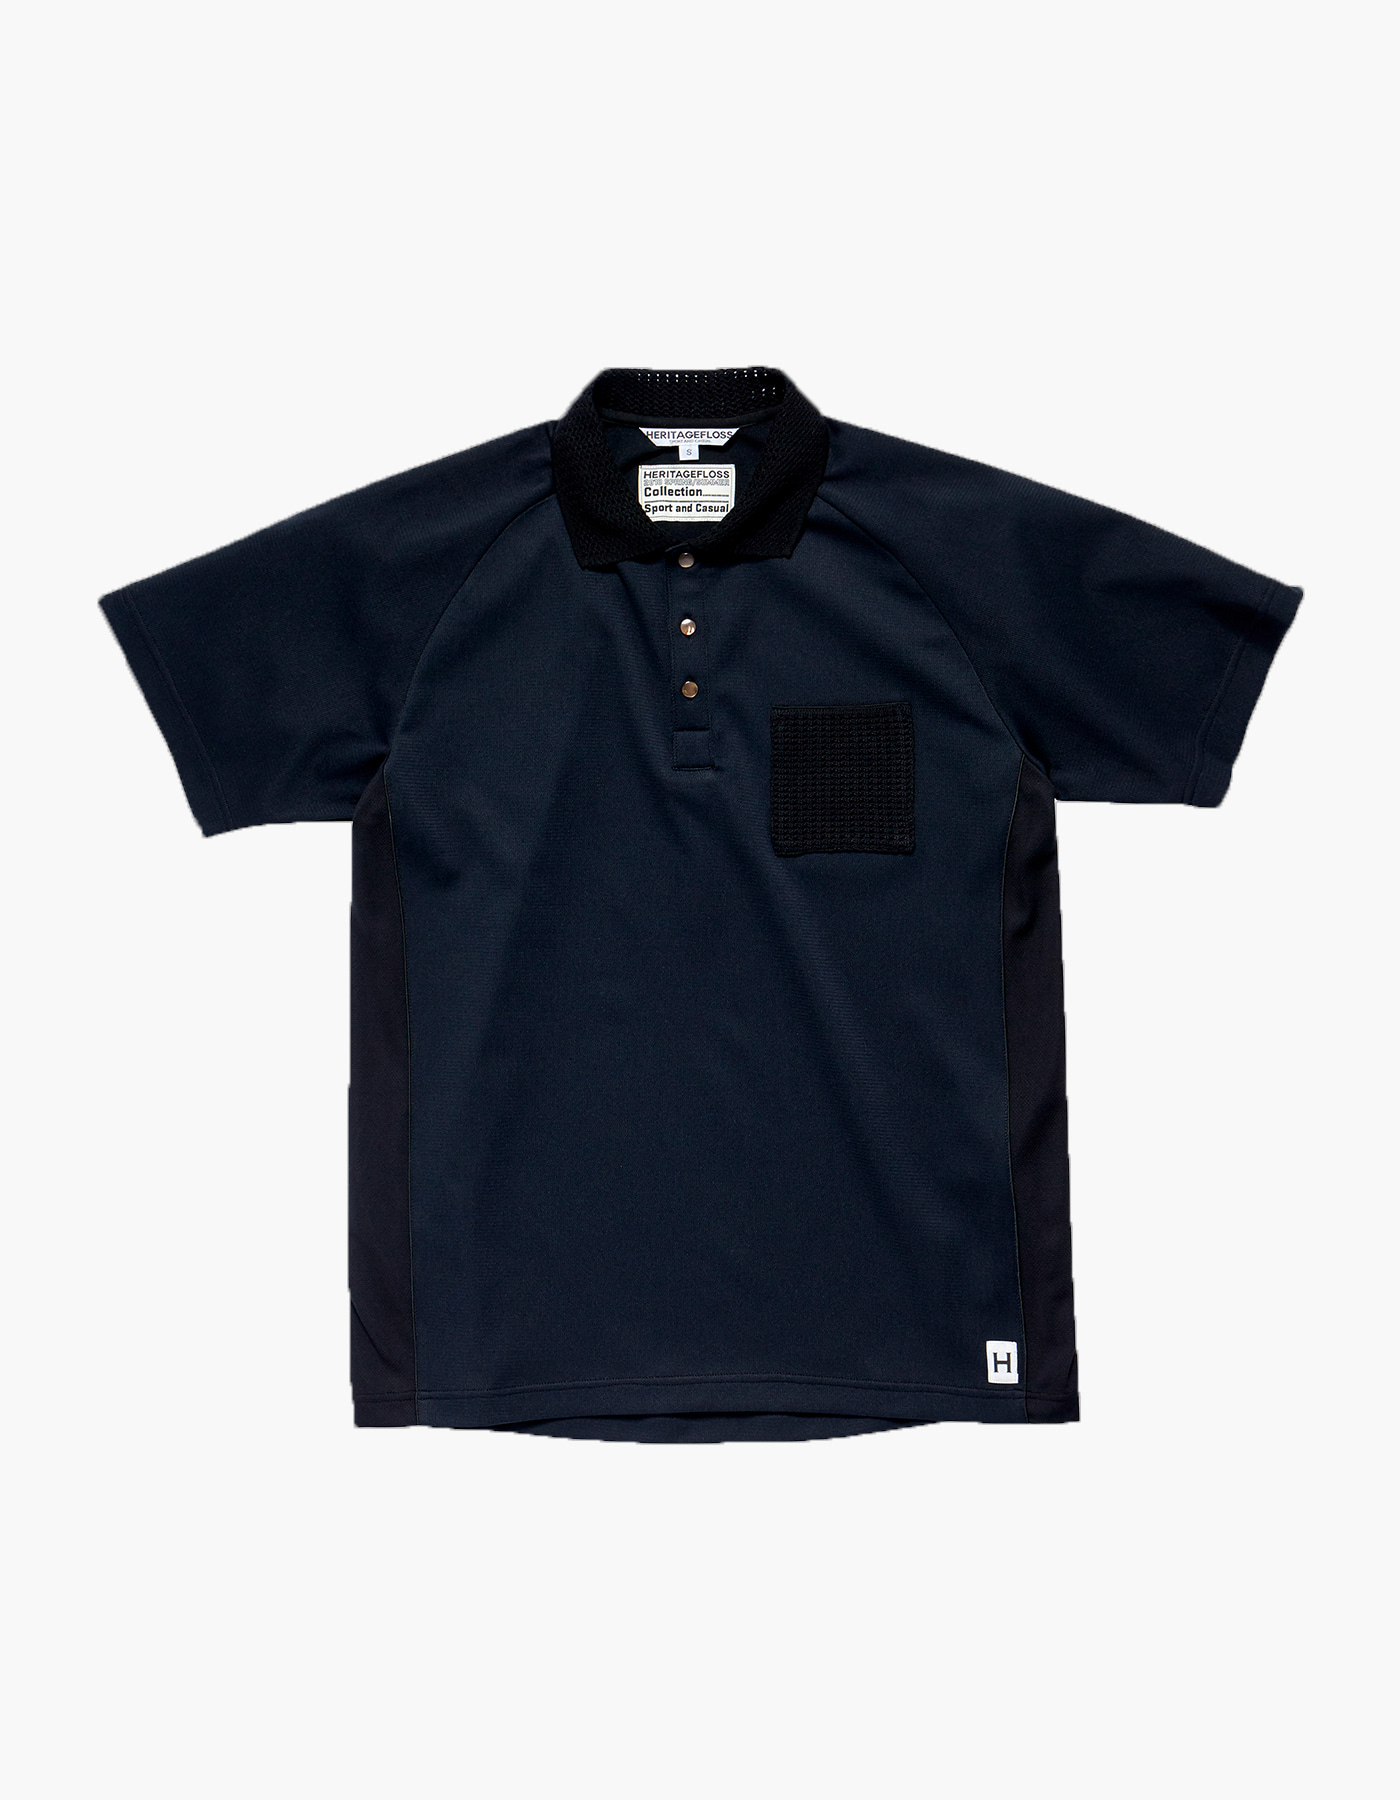 HFC CRICKET POLO SHIRTS / BLACK